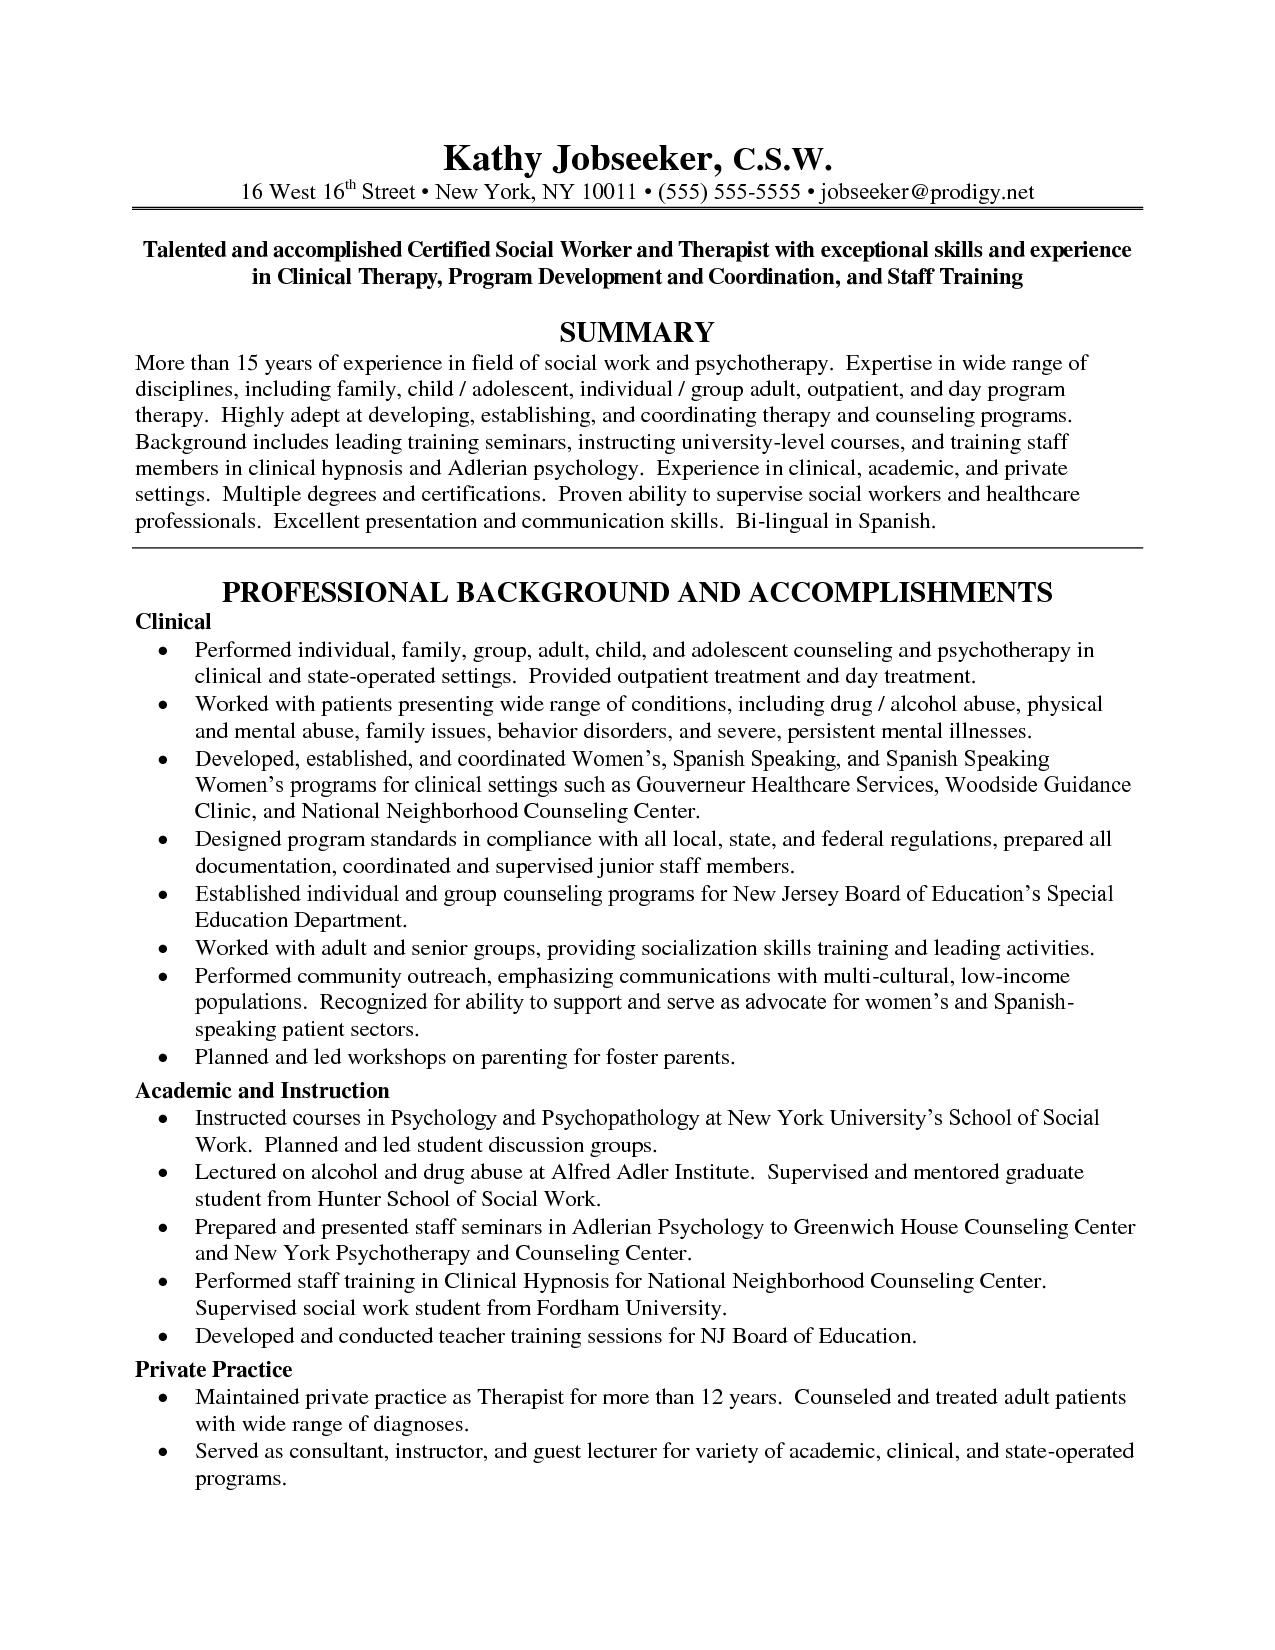 social work resume examples social work resume with license social work resume work